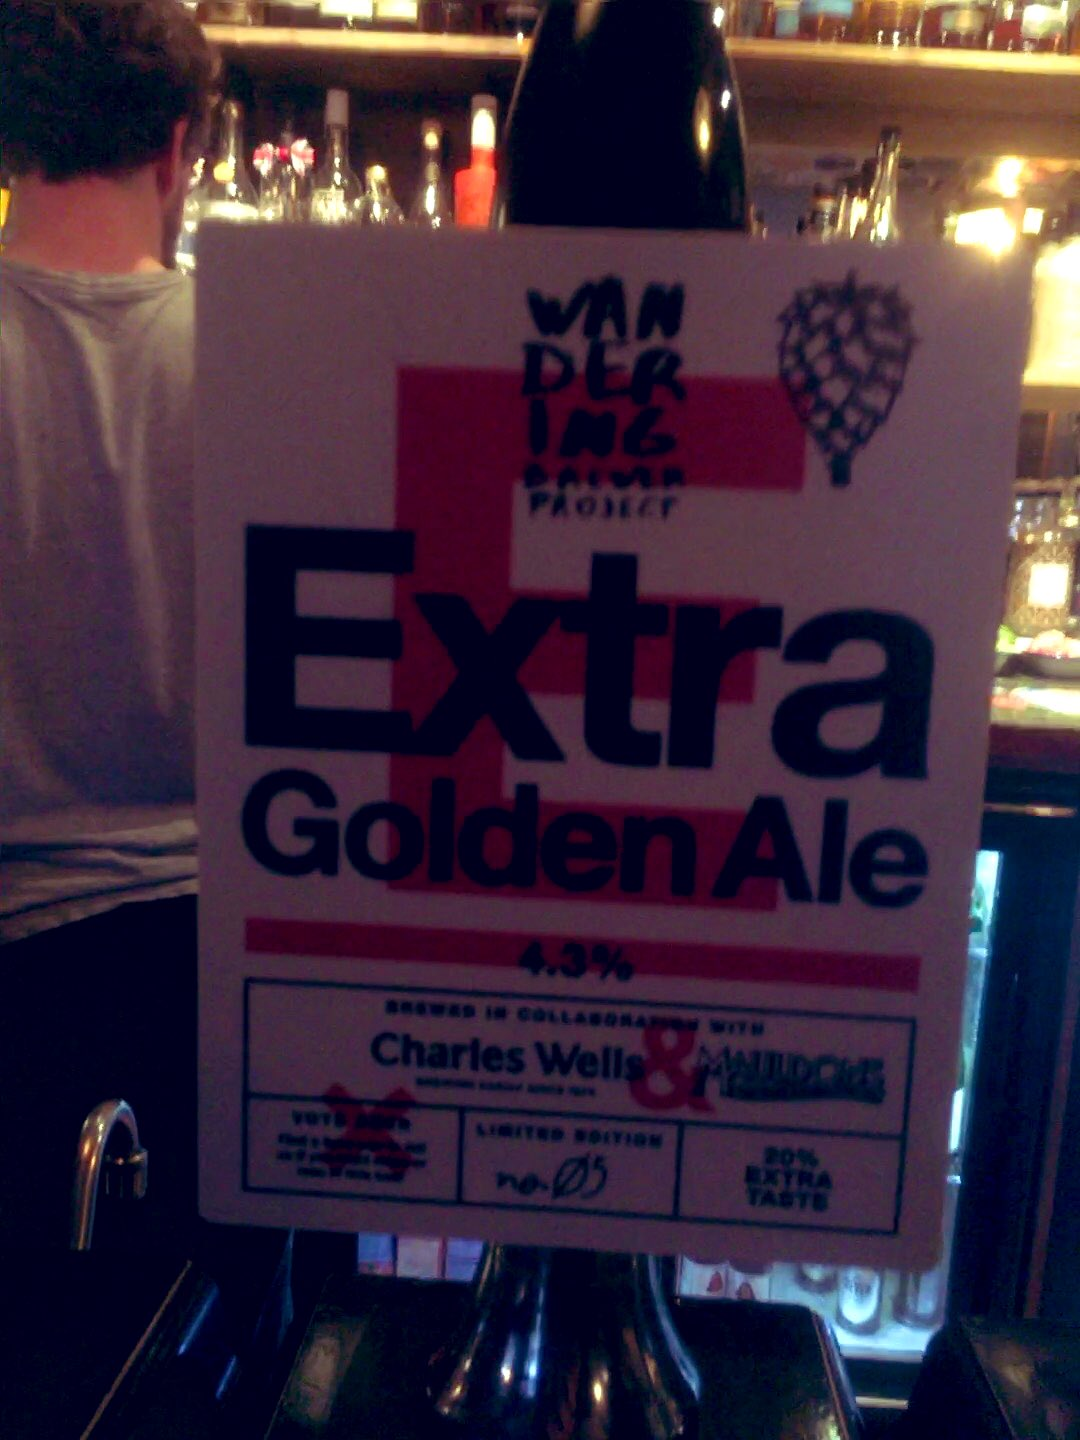 295: Extra Golden Ale